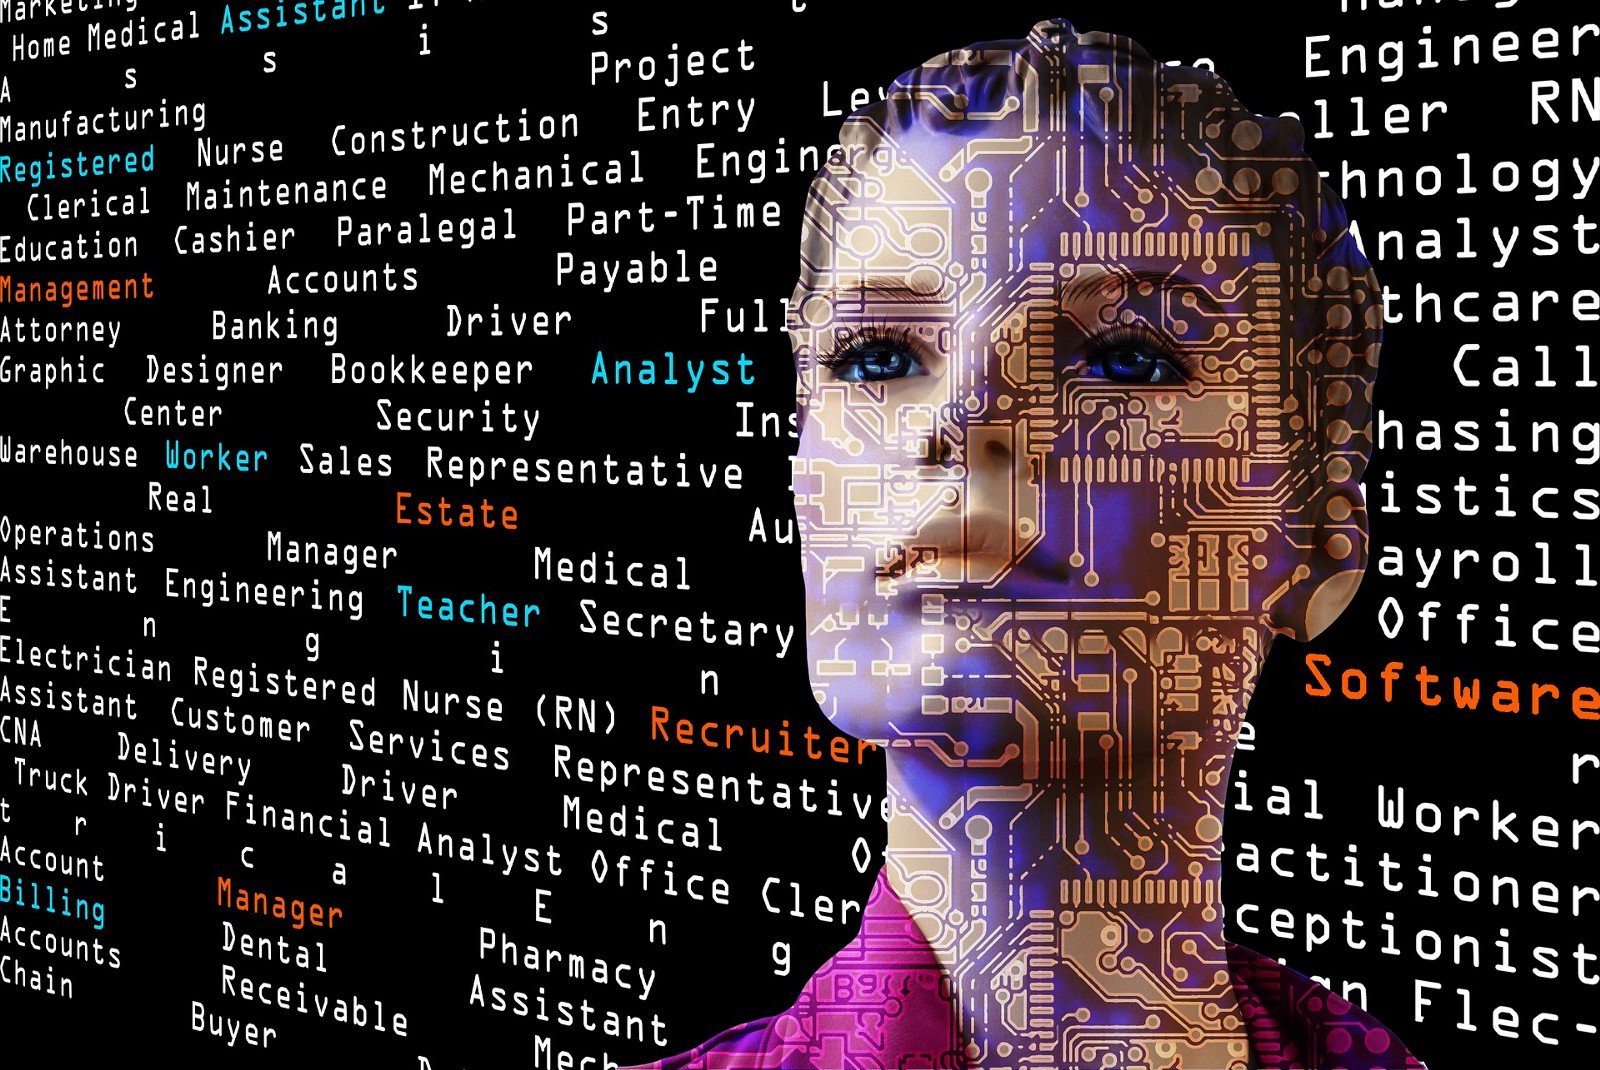 Artificial Intelligence The Impact On Employment And The Workforce